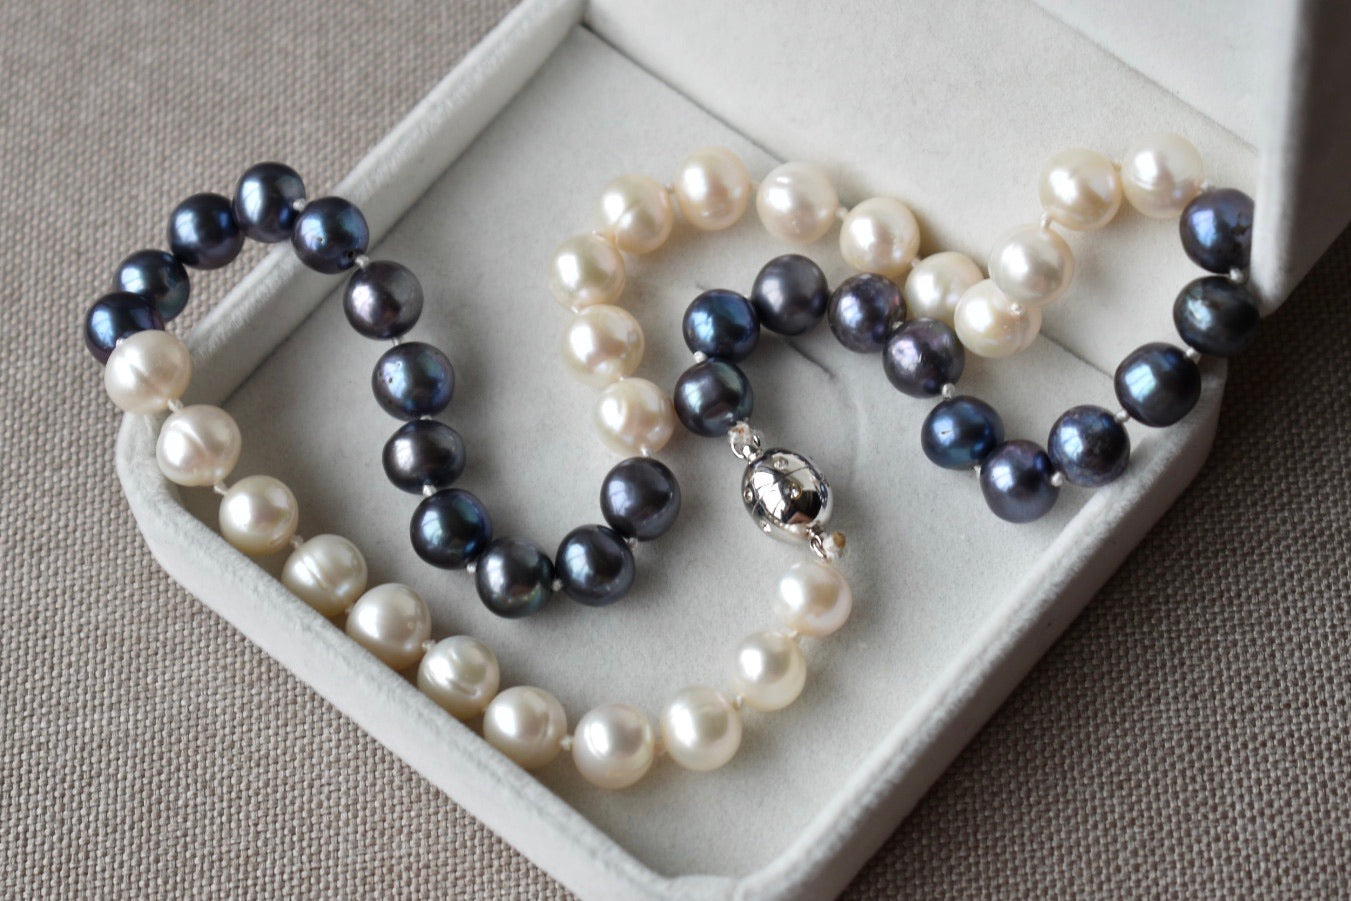 Black and White Freshwater Pearl Necklace, 8.5-9.5mm